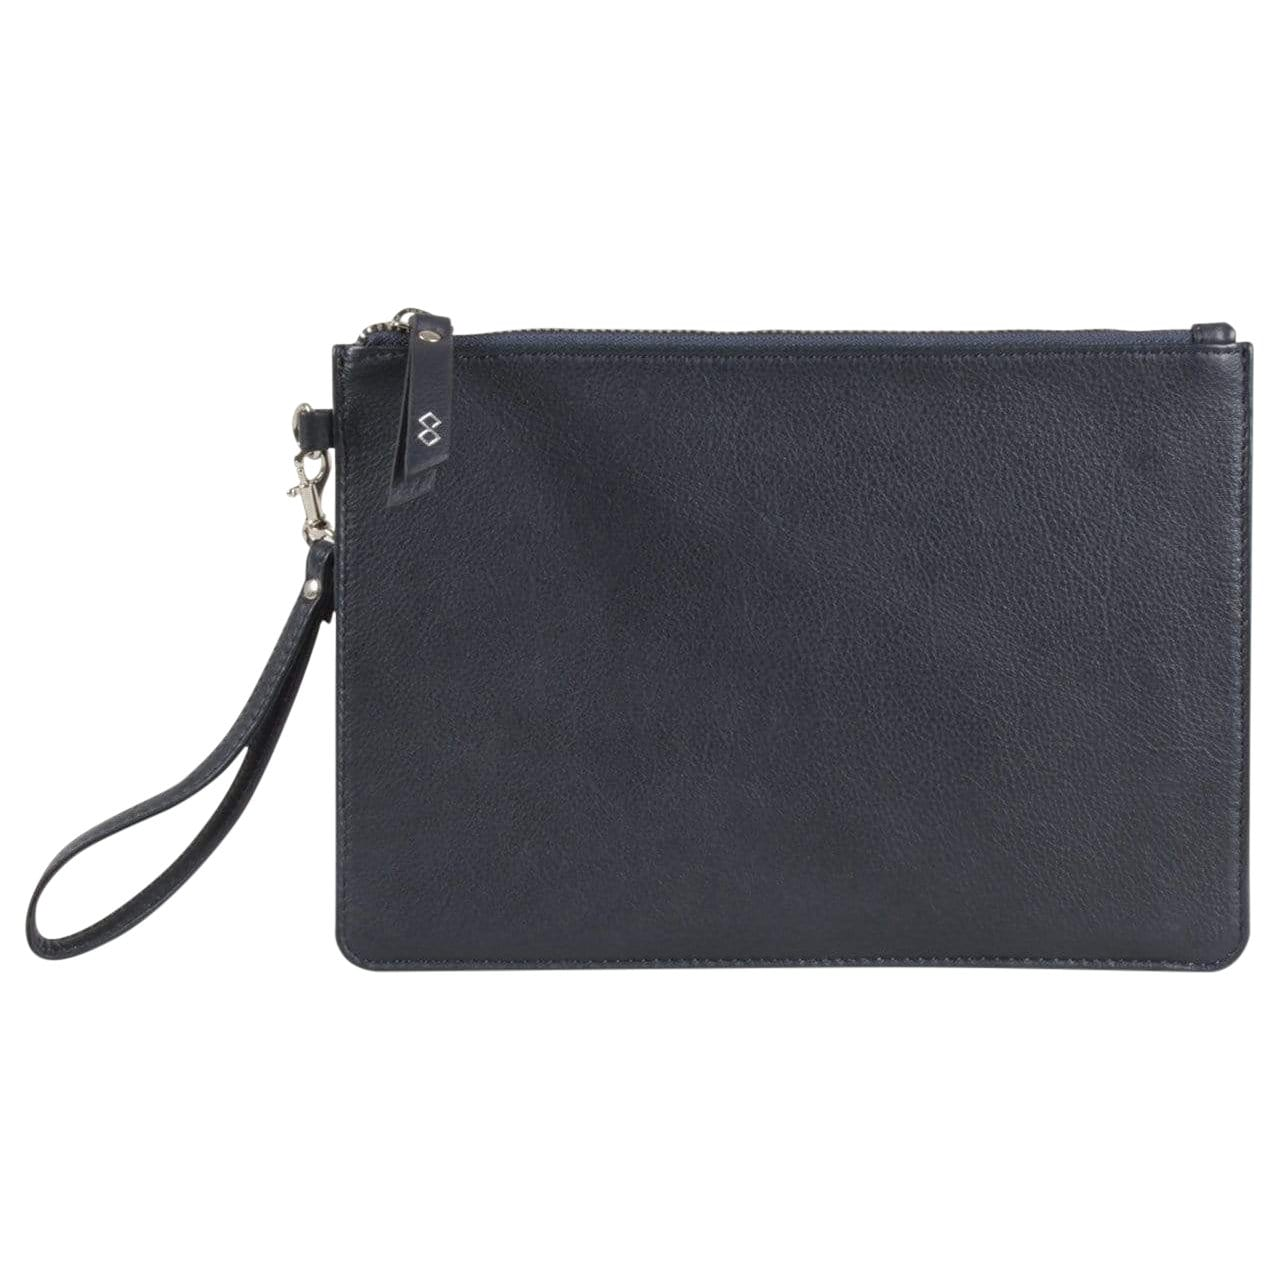 Issara Handbags & Clutches navy Leather Clutch